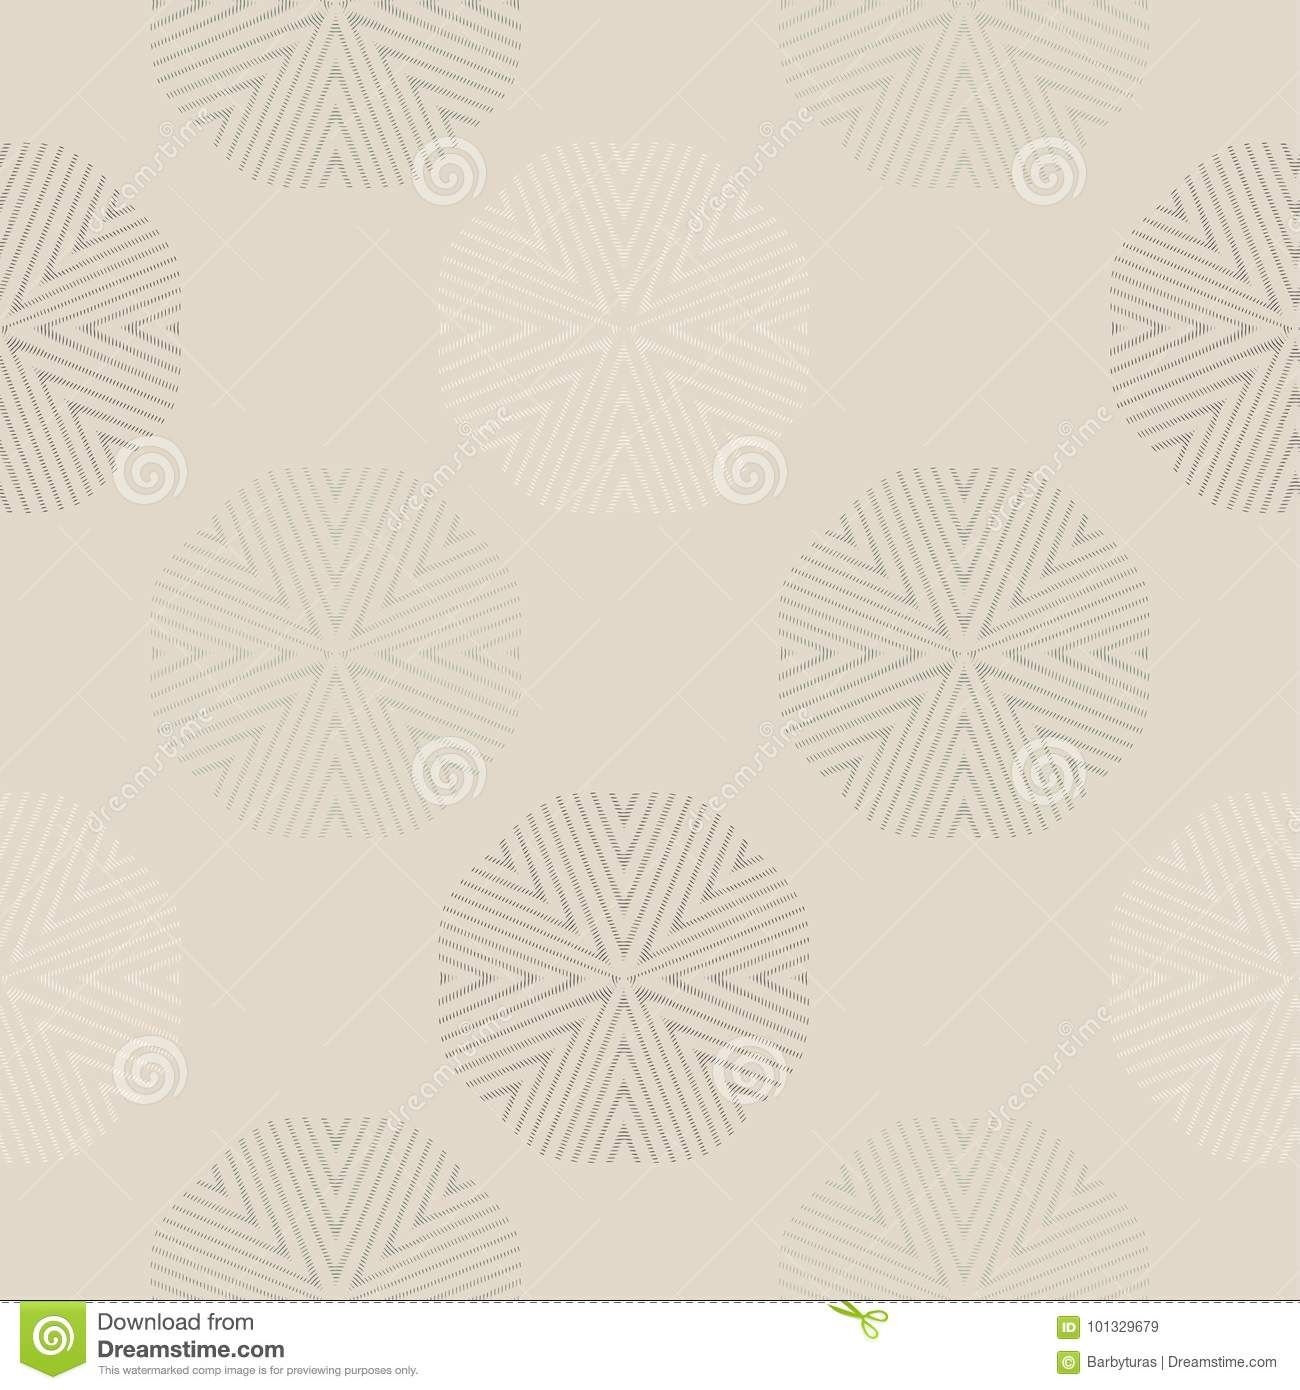 Snowflake Simple Seamless Pattern. Abstract Wallpaper, Wrapping